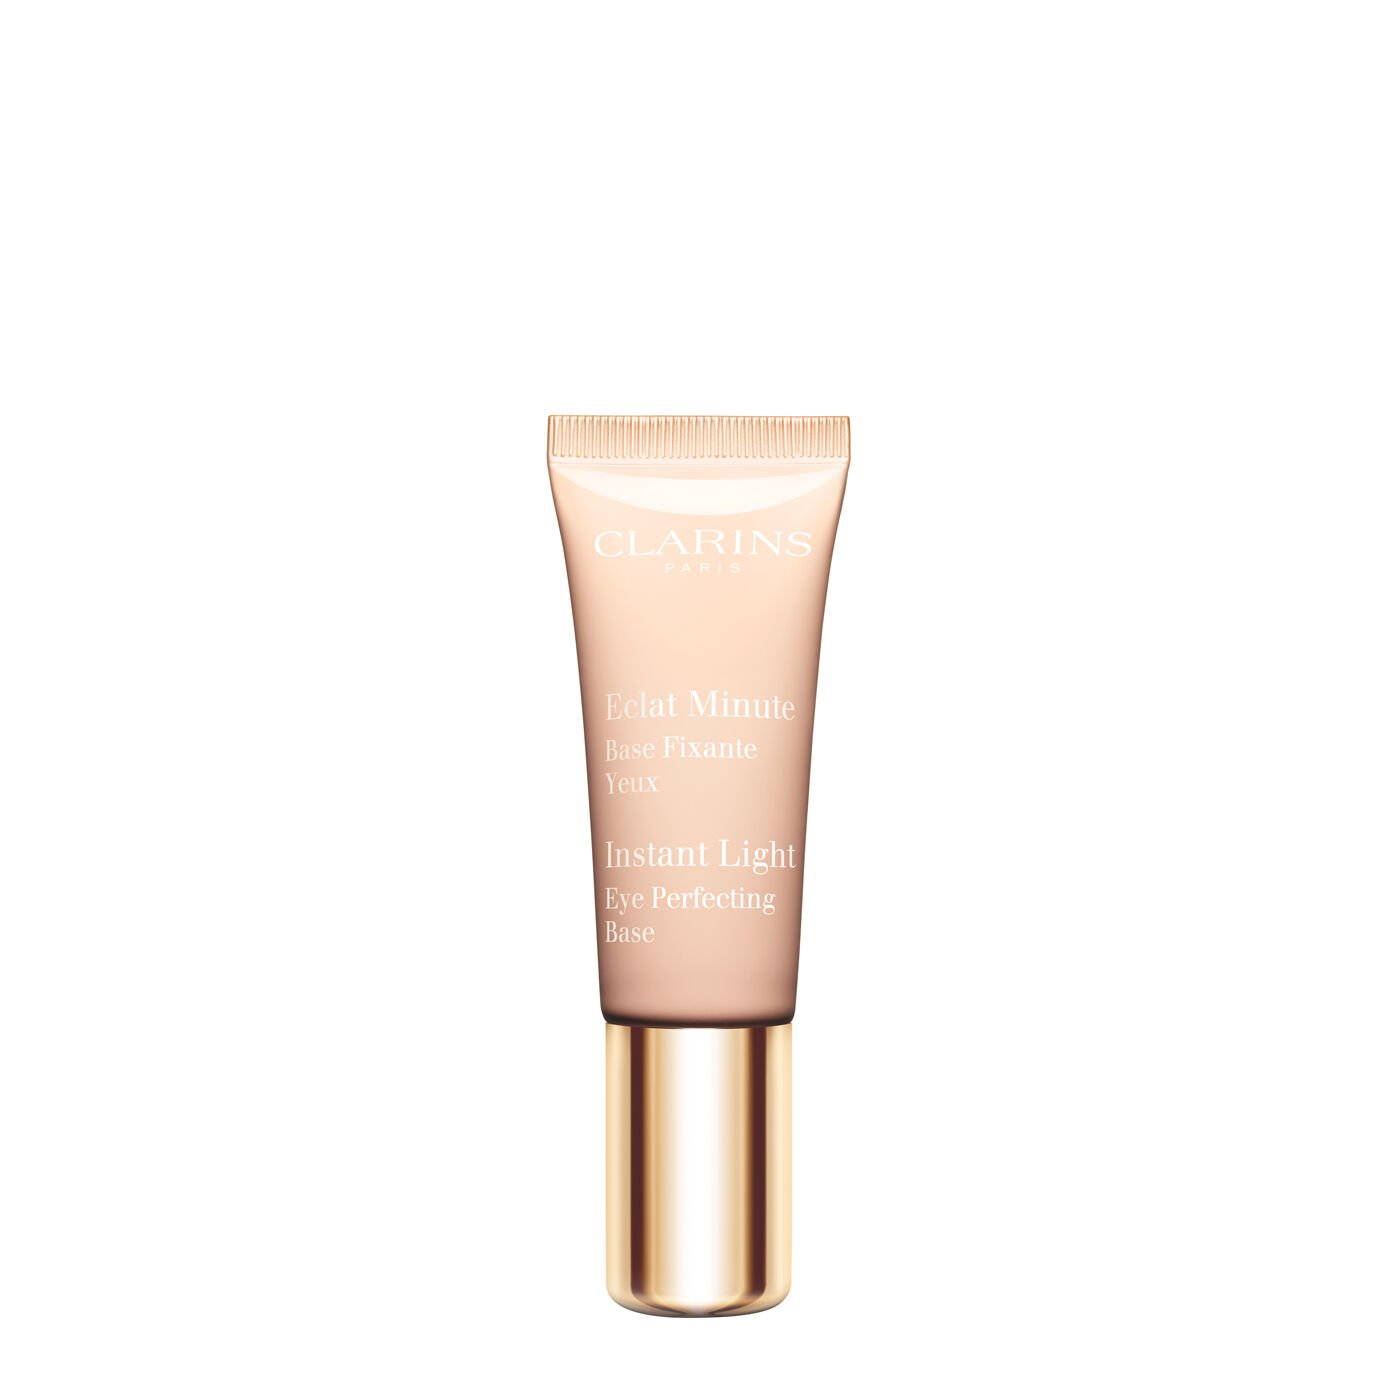 Augenmakeup-Highlighter%20Eclat%20Minute%20Base%20Fixante%20Yeux